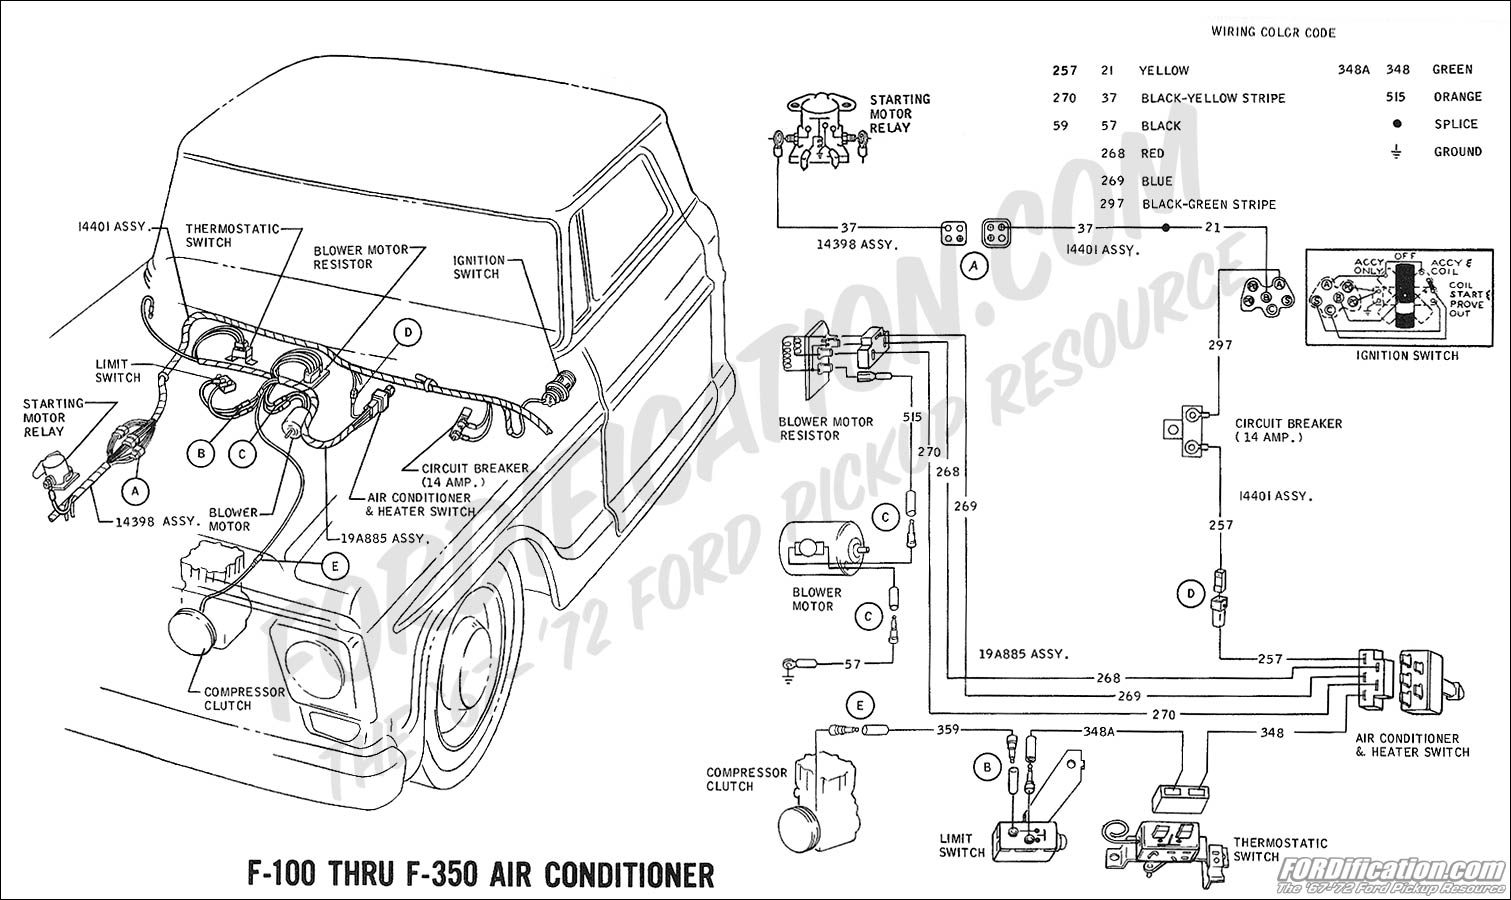 1988 Toyota Truck 4runner Electrical Wiring Diagram Manual Various Pickup Ford Technical Drawings And Schematics Section H Diagrams 1992 F 150